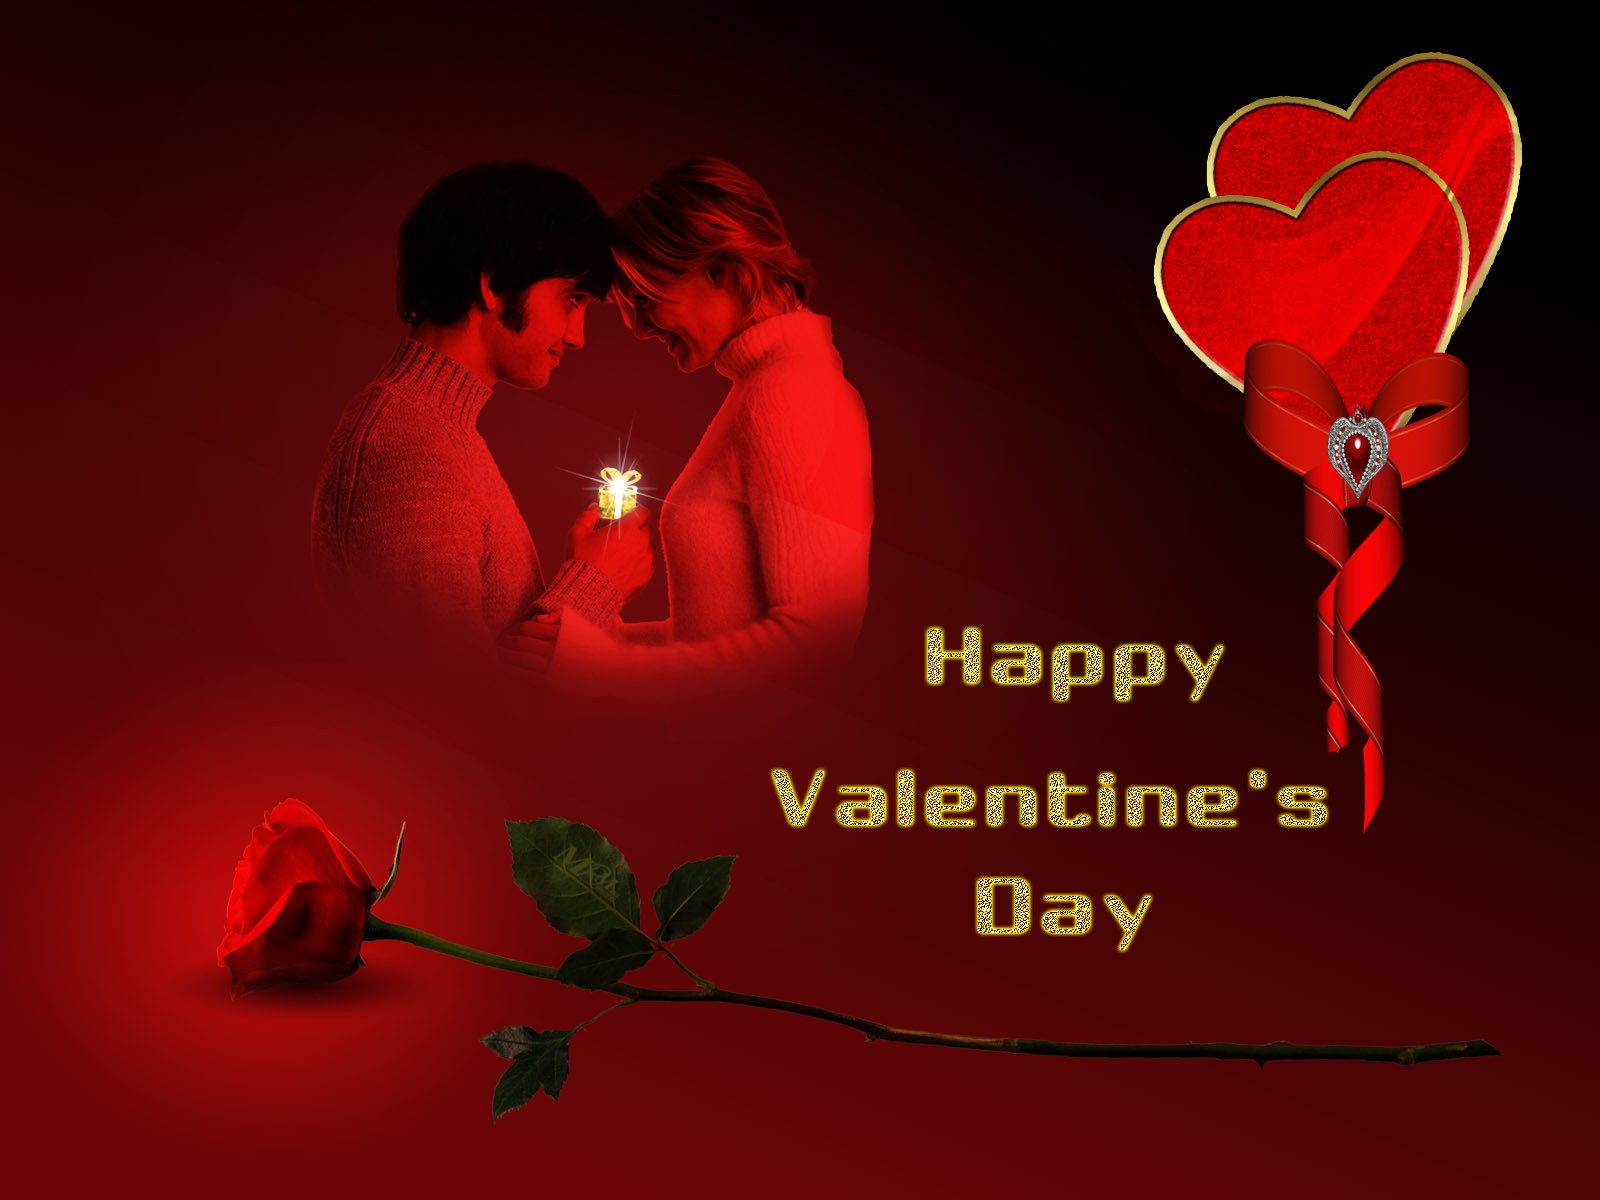 20 Best Valentines Day SMS Wishes Quotes Message Pictures And – Best Quotes for Valentines Cards